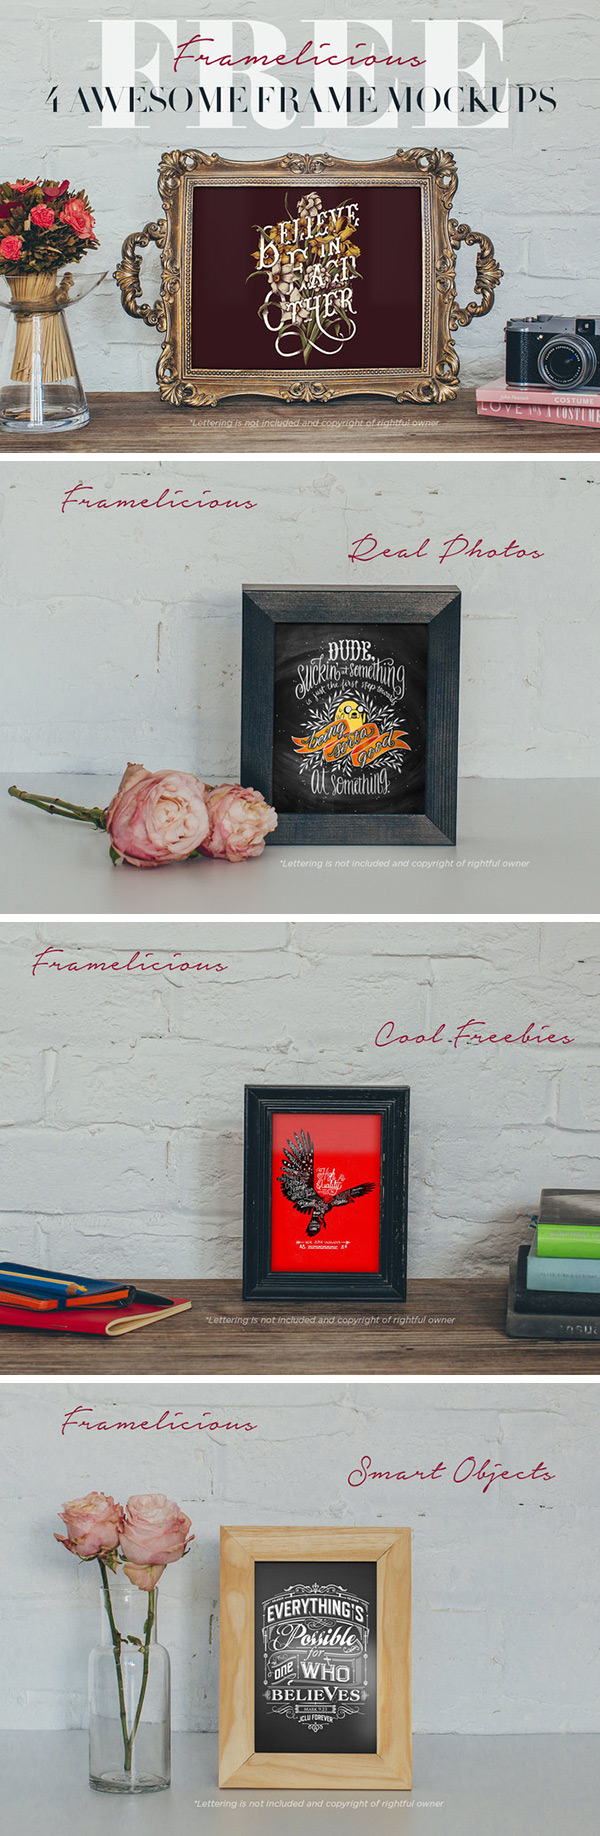 Photo Frame Mockup PSD Free Download